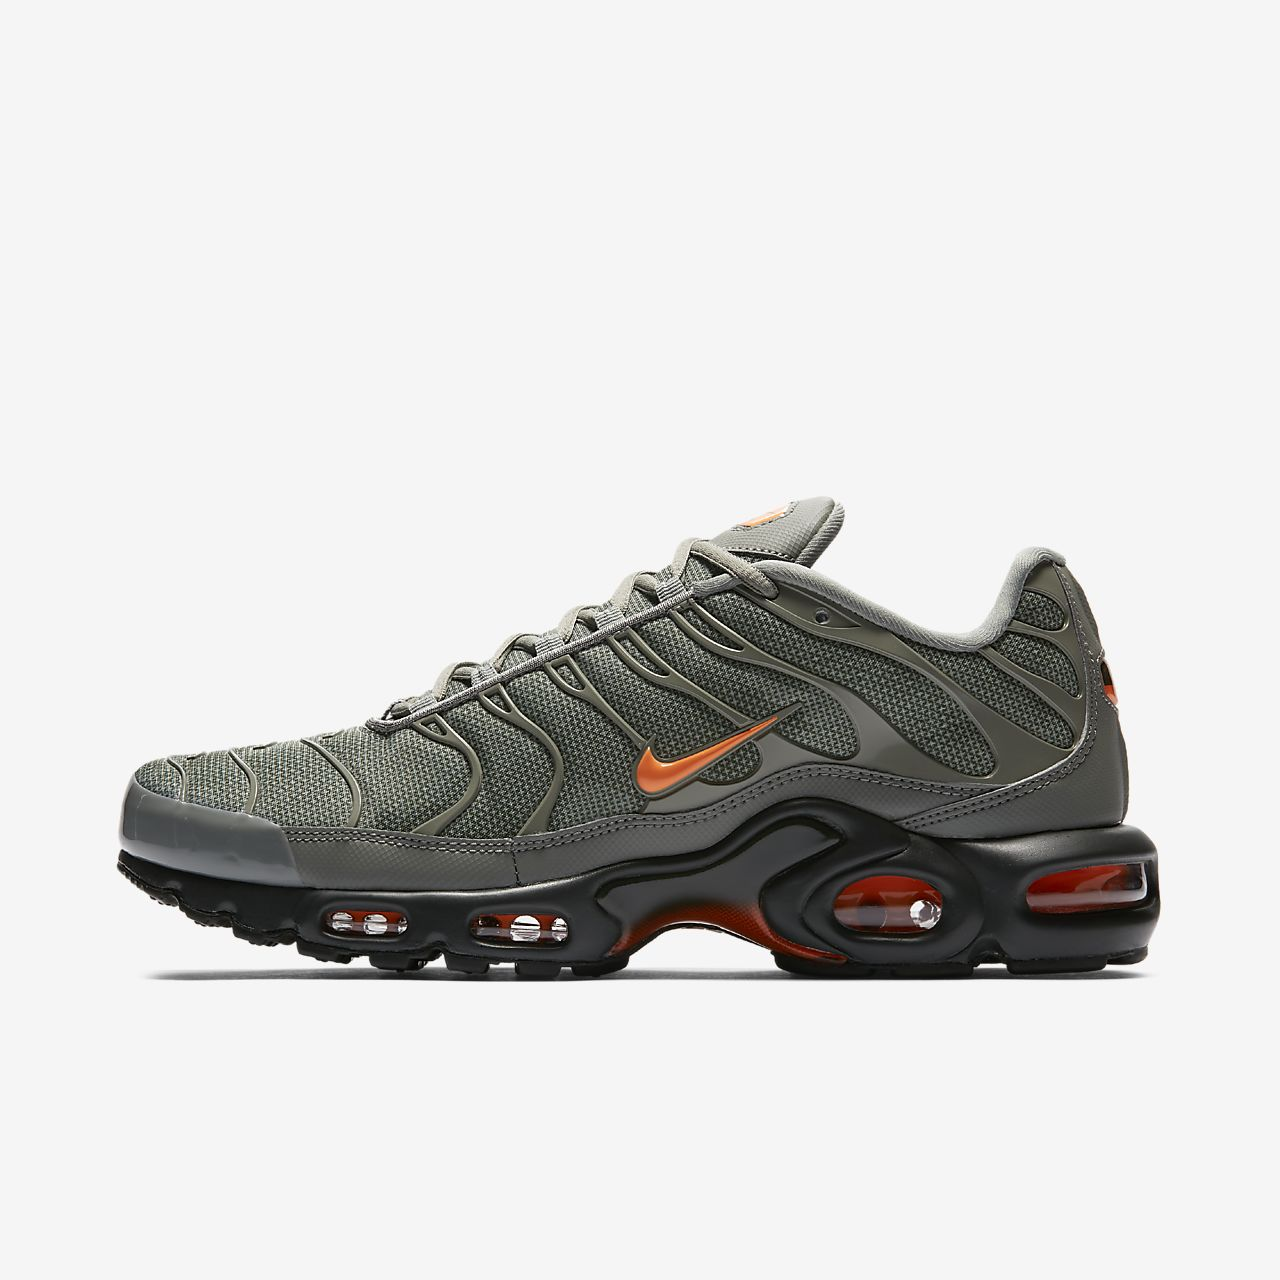 sports shoes 633b3 602f9 nike air max plus tn couleur homme,air max tn requin pas cher,nike